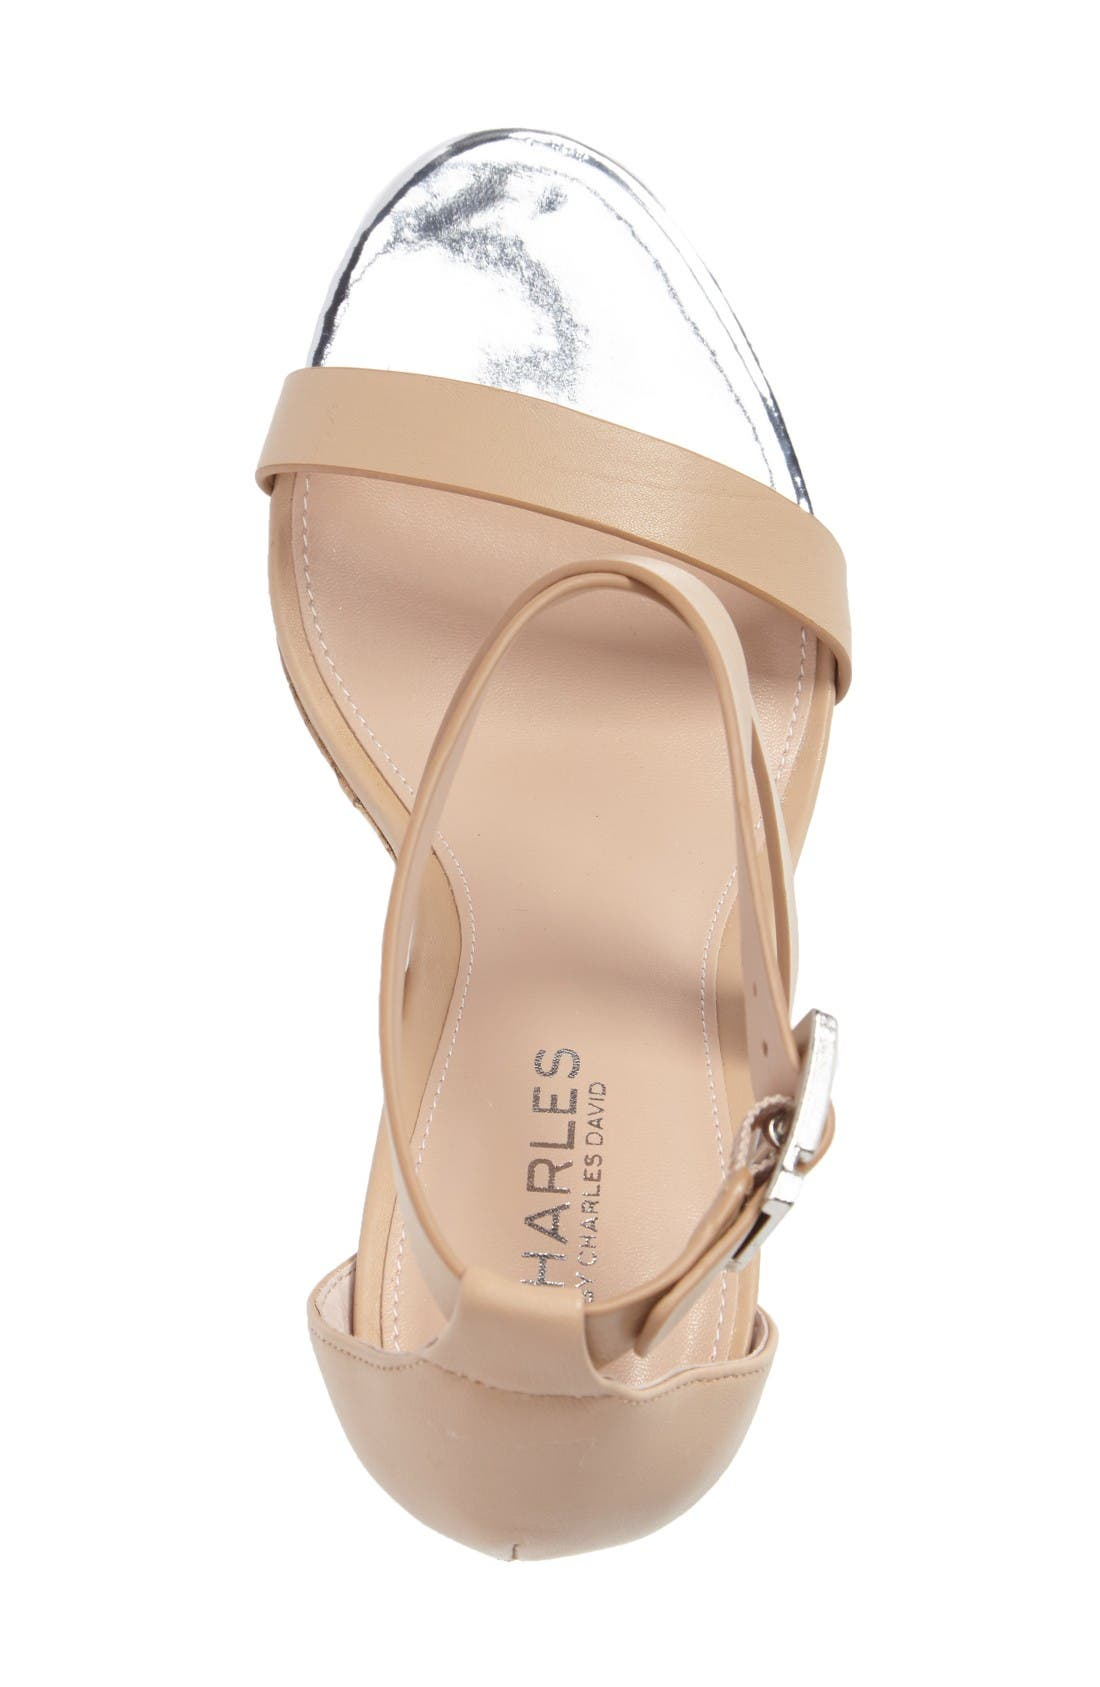 Aden Platform Wedge Sandal,                             Alternate thumbnail 3, color,                             Nude Leather